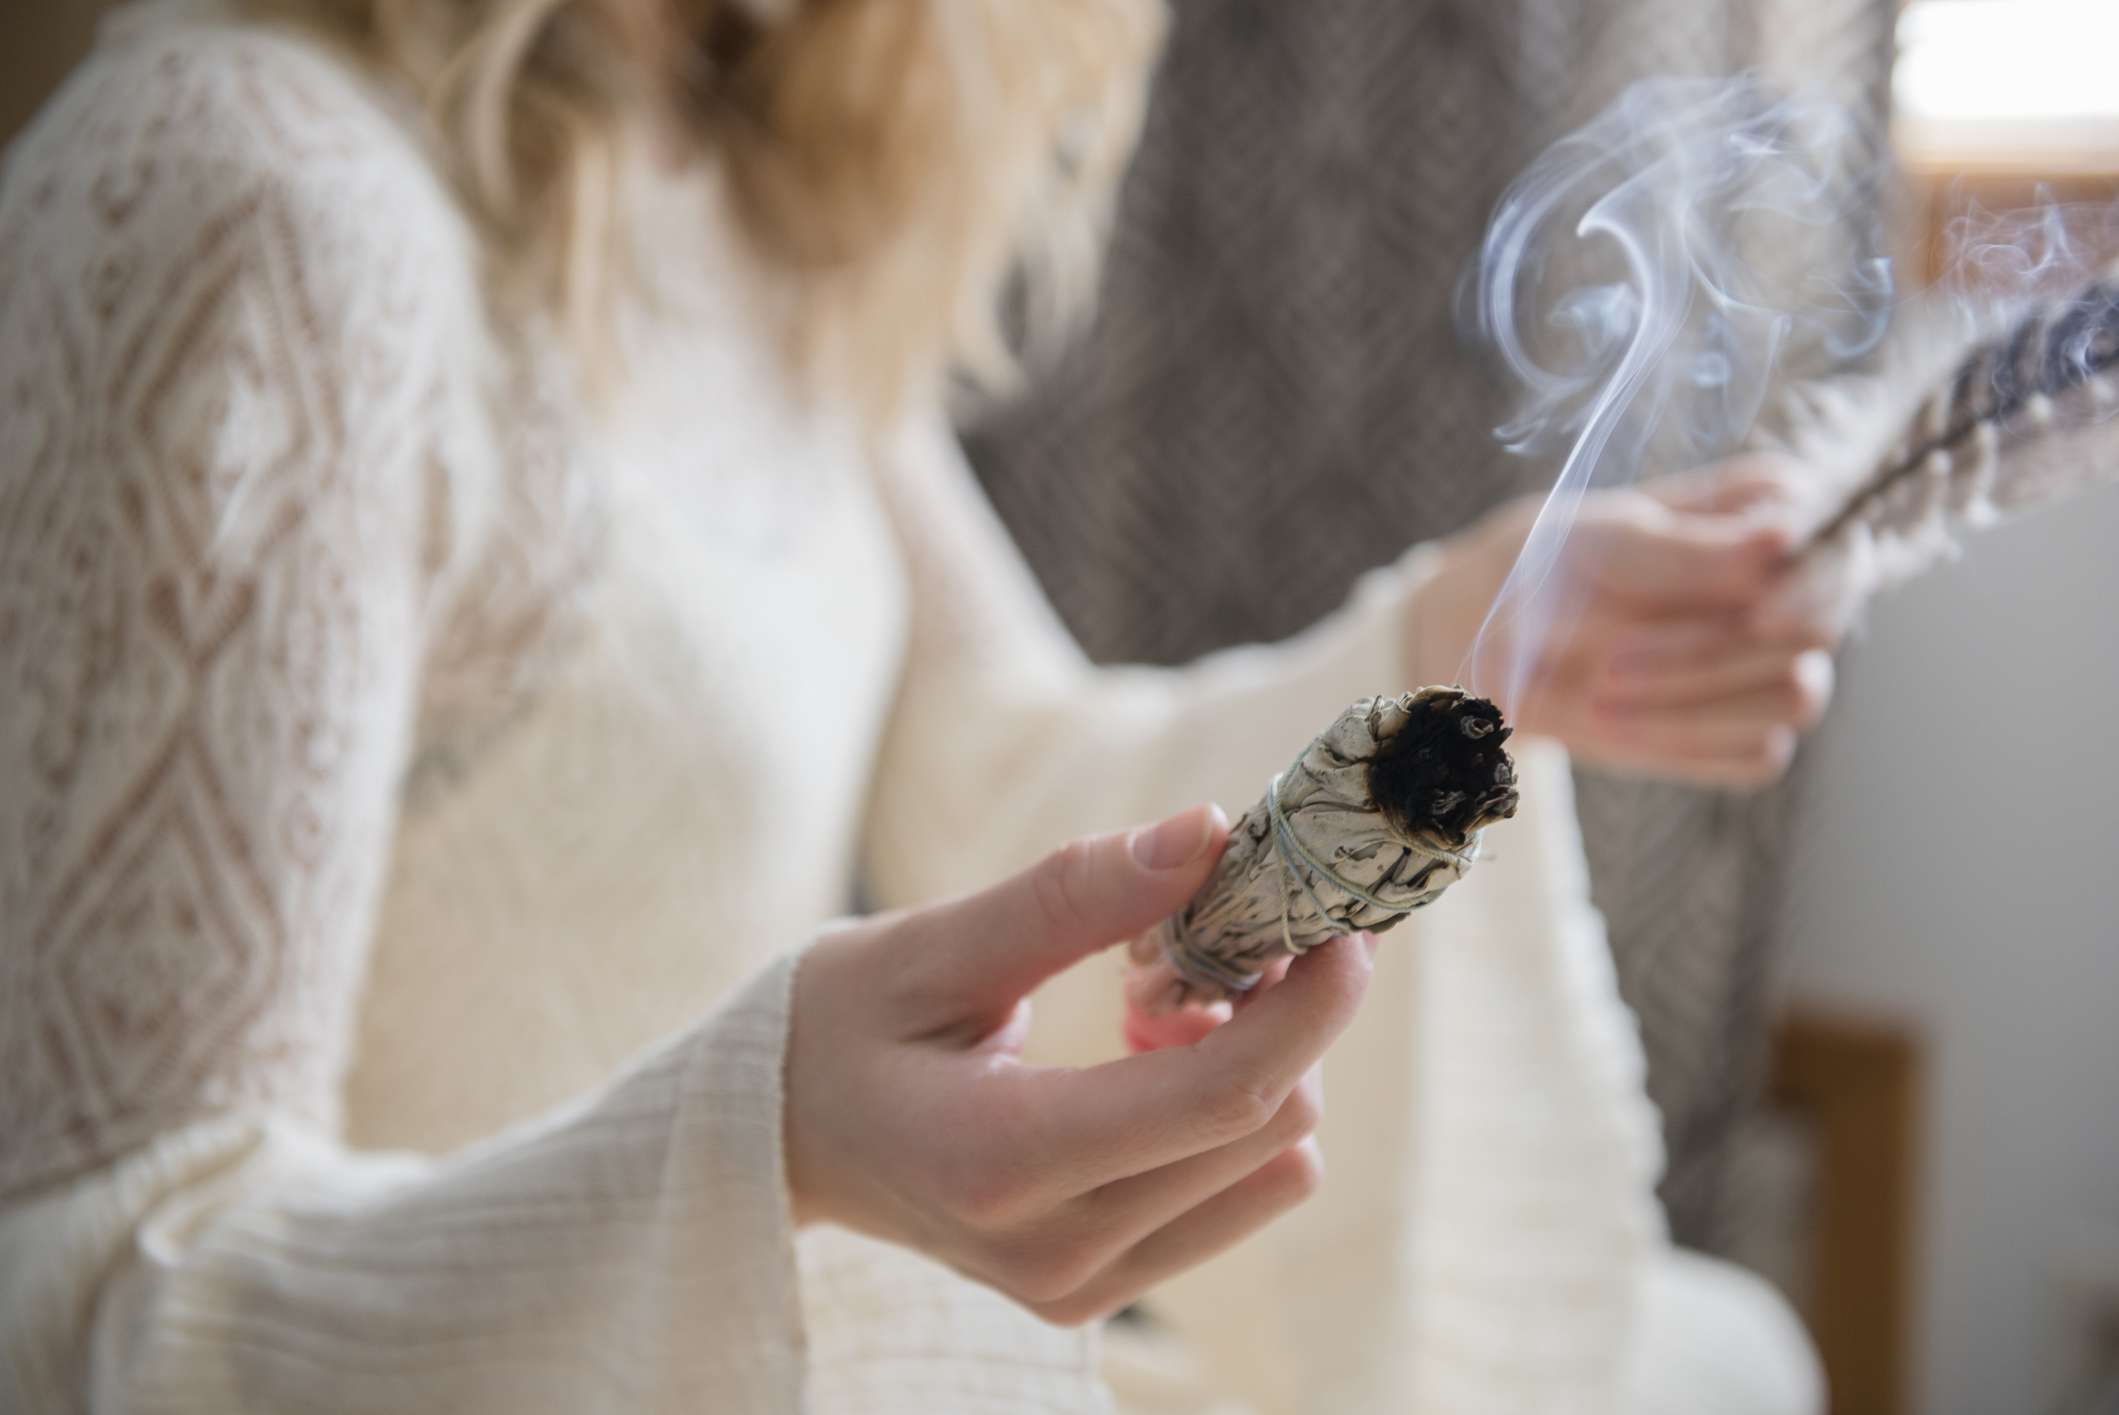 Woman holds bundle of sage to smudge room